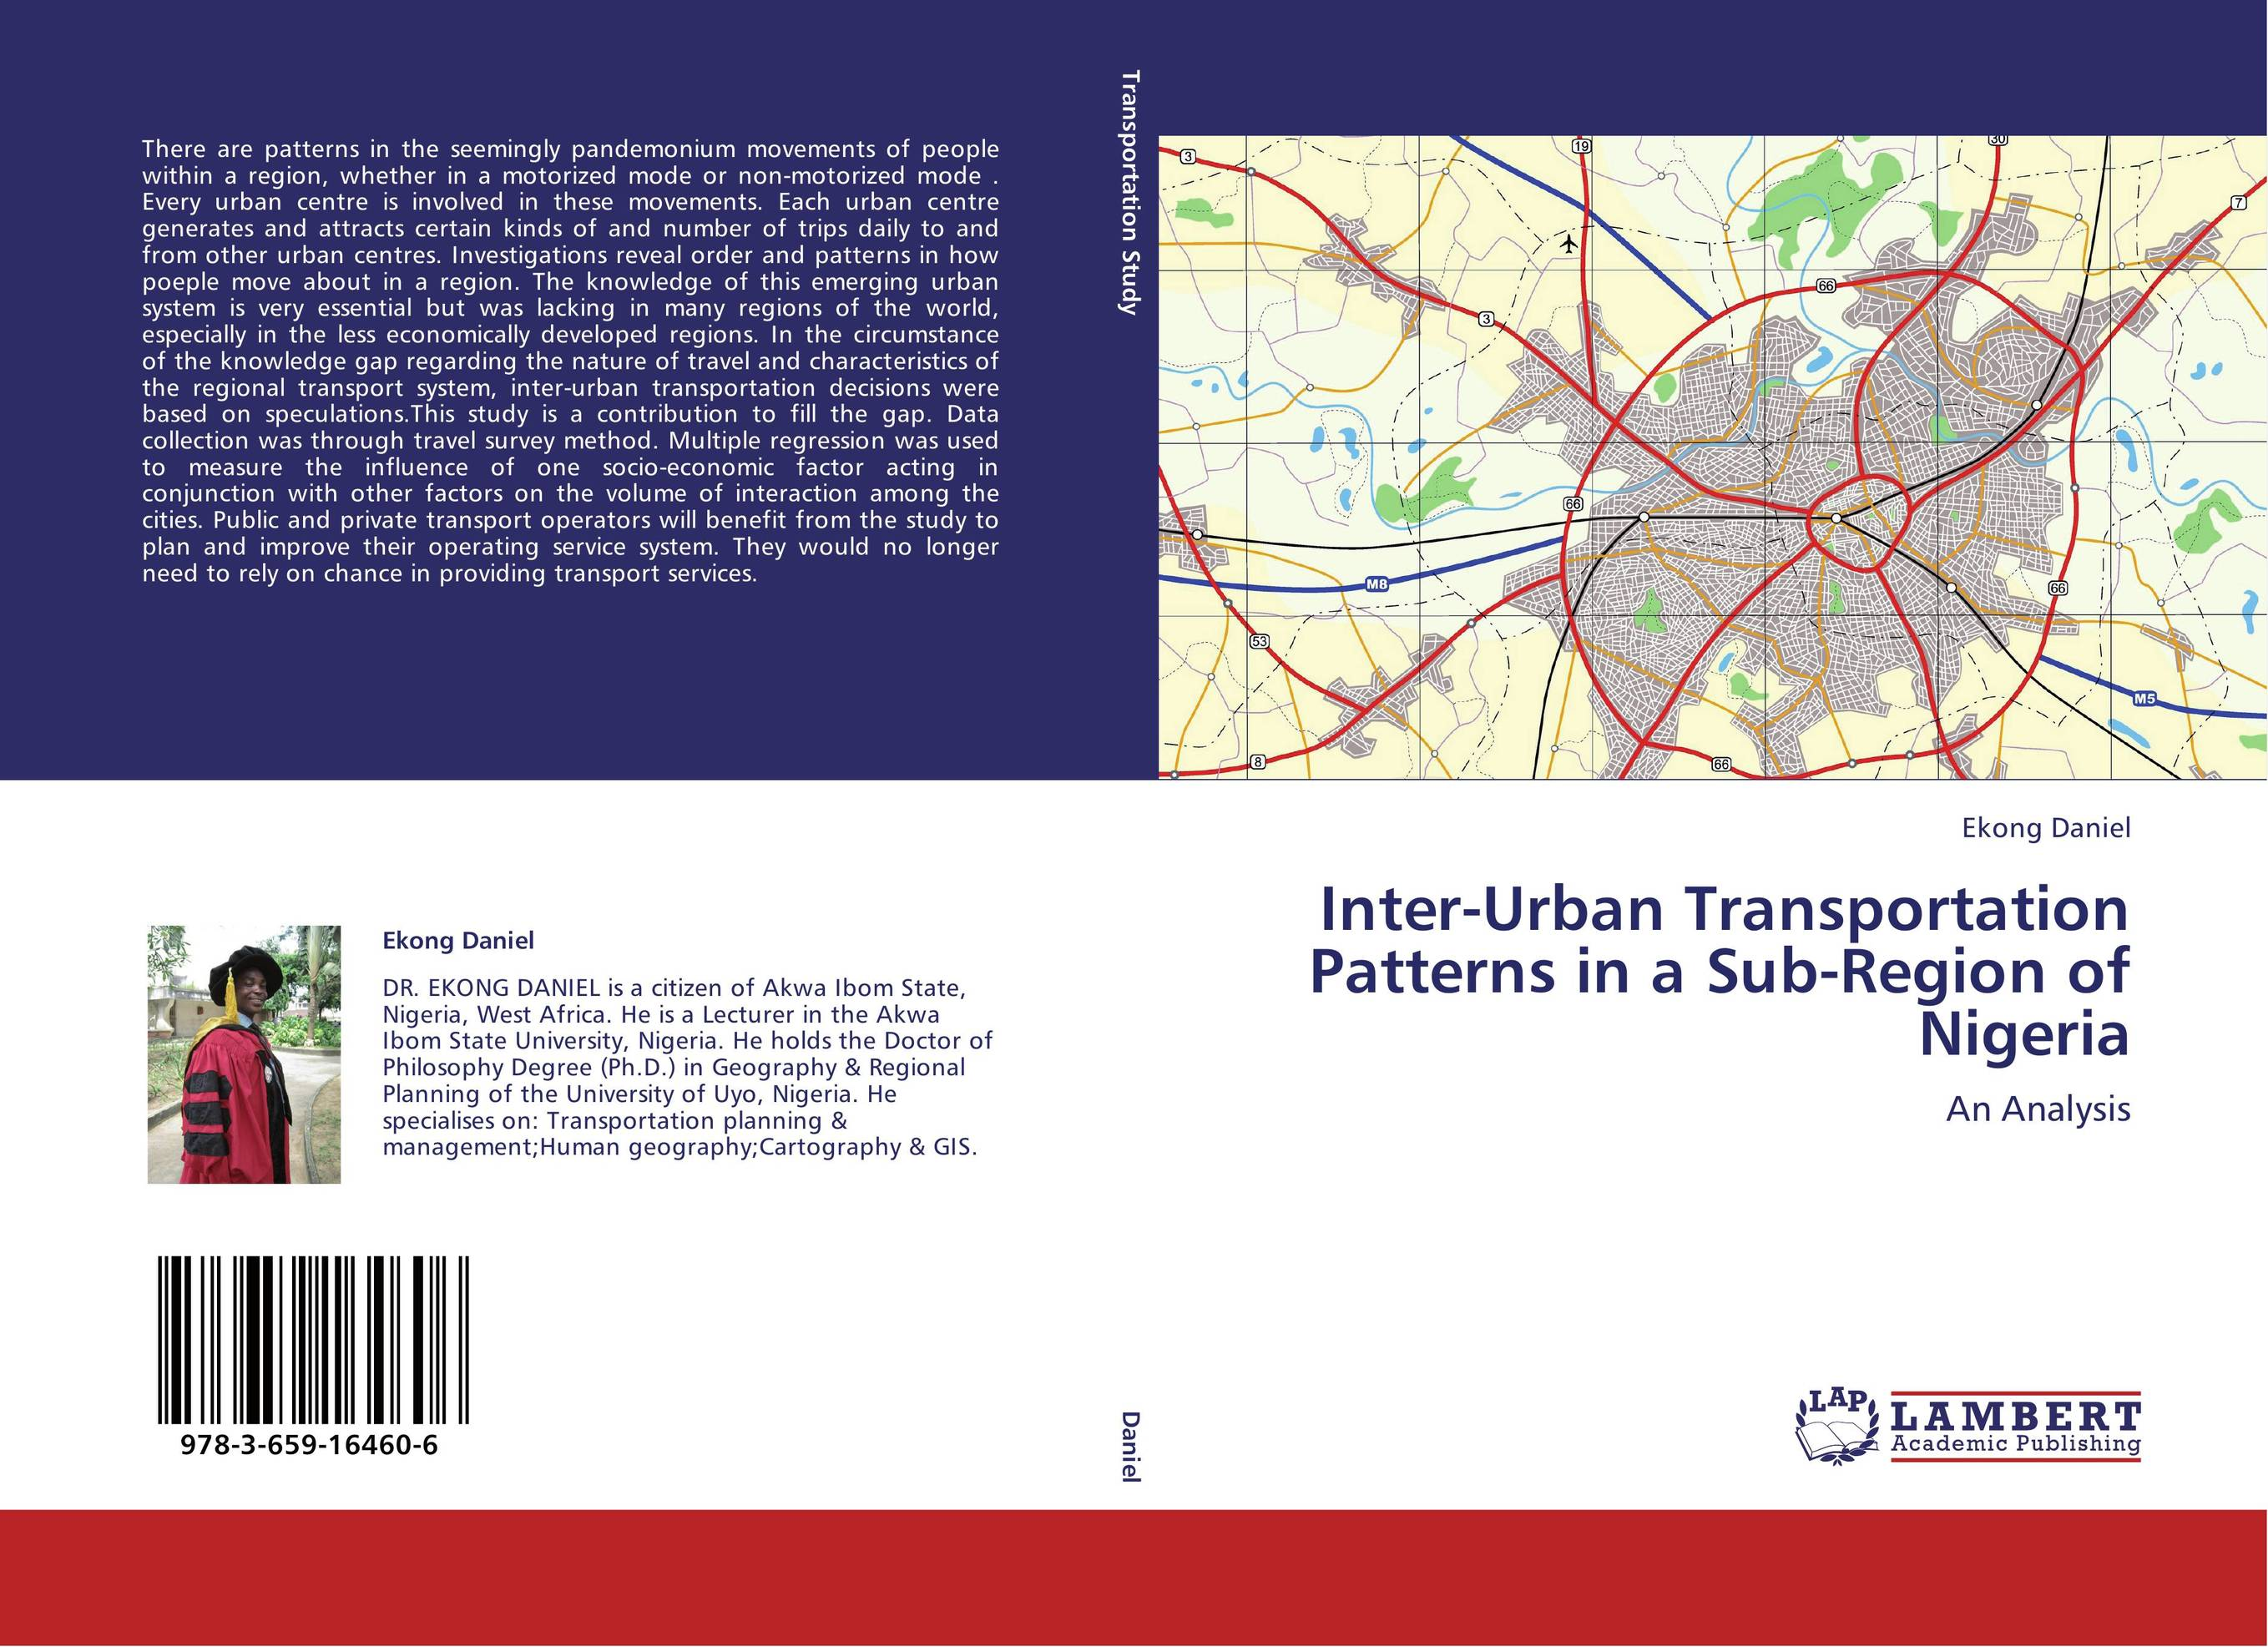 an analysis of the term urban An urban area or urban agglomeration is a human settlement with high population density and infrastructure of built environmenturban areas are created through urbanization and are categorized by urban morphology as cities, towns, conurbations or suburbsin urbanism, the term contrasts to rural areas such as villages and hamlets and in urban sociology or urban anthropology it contrasts with.